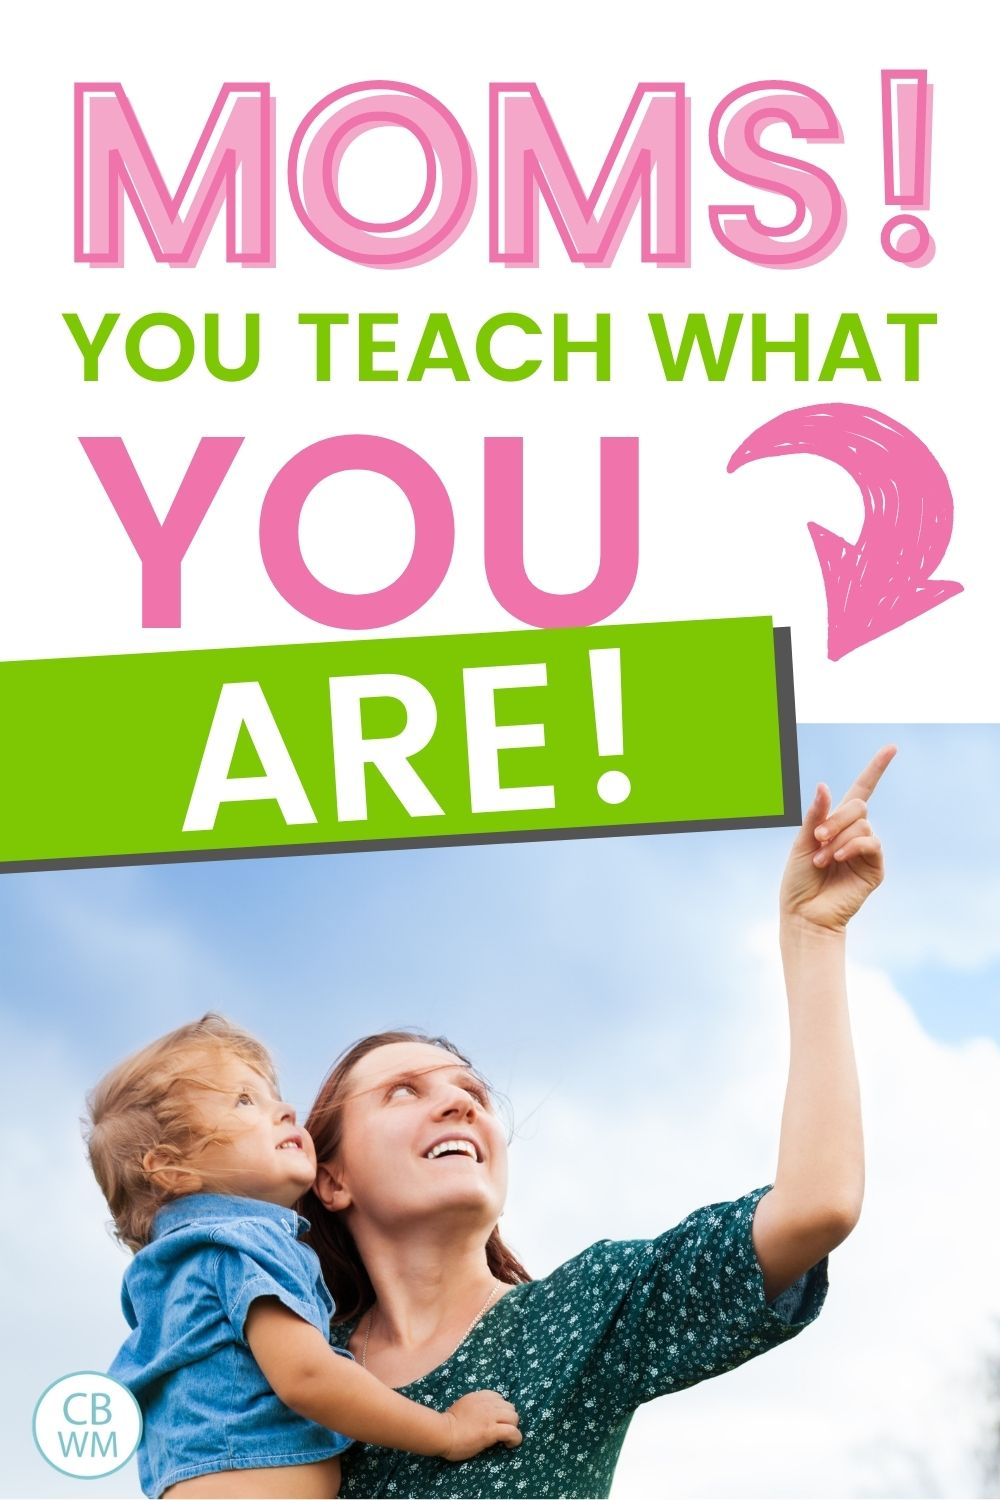 You teach what you are pinnable image